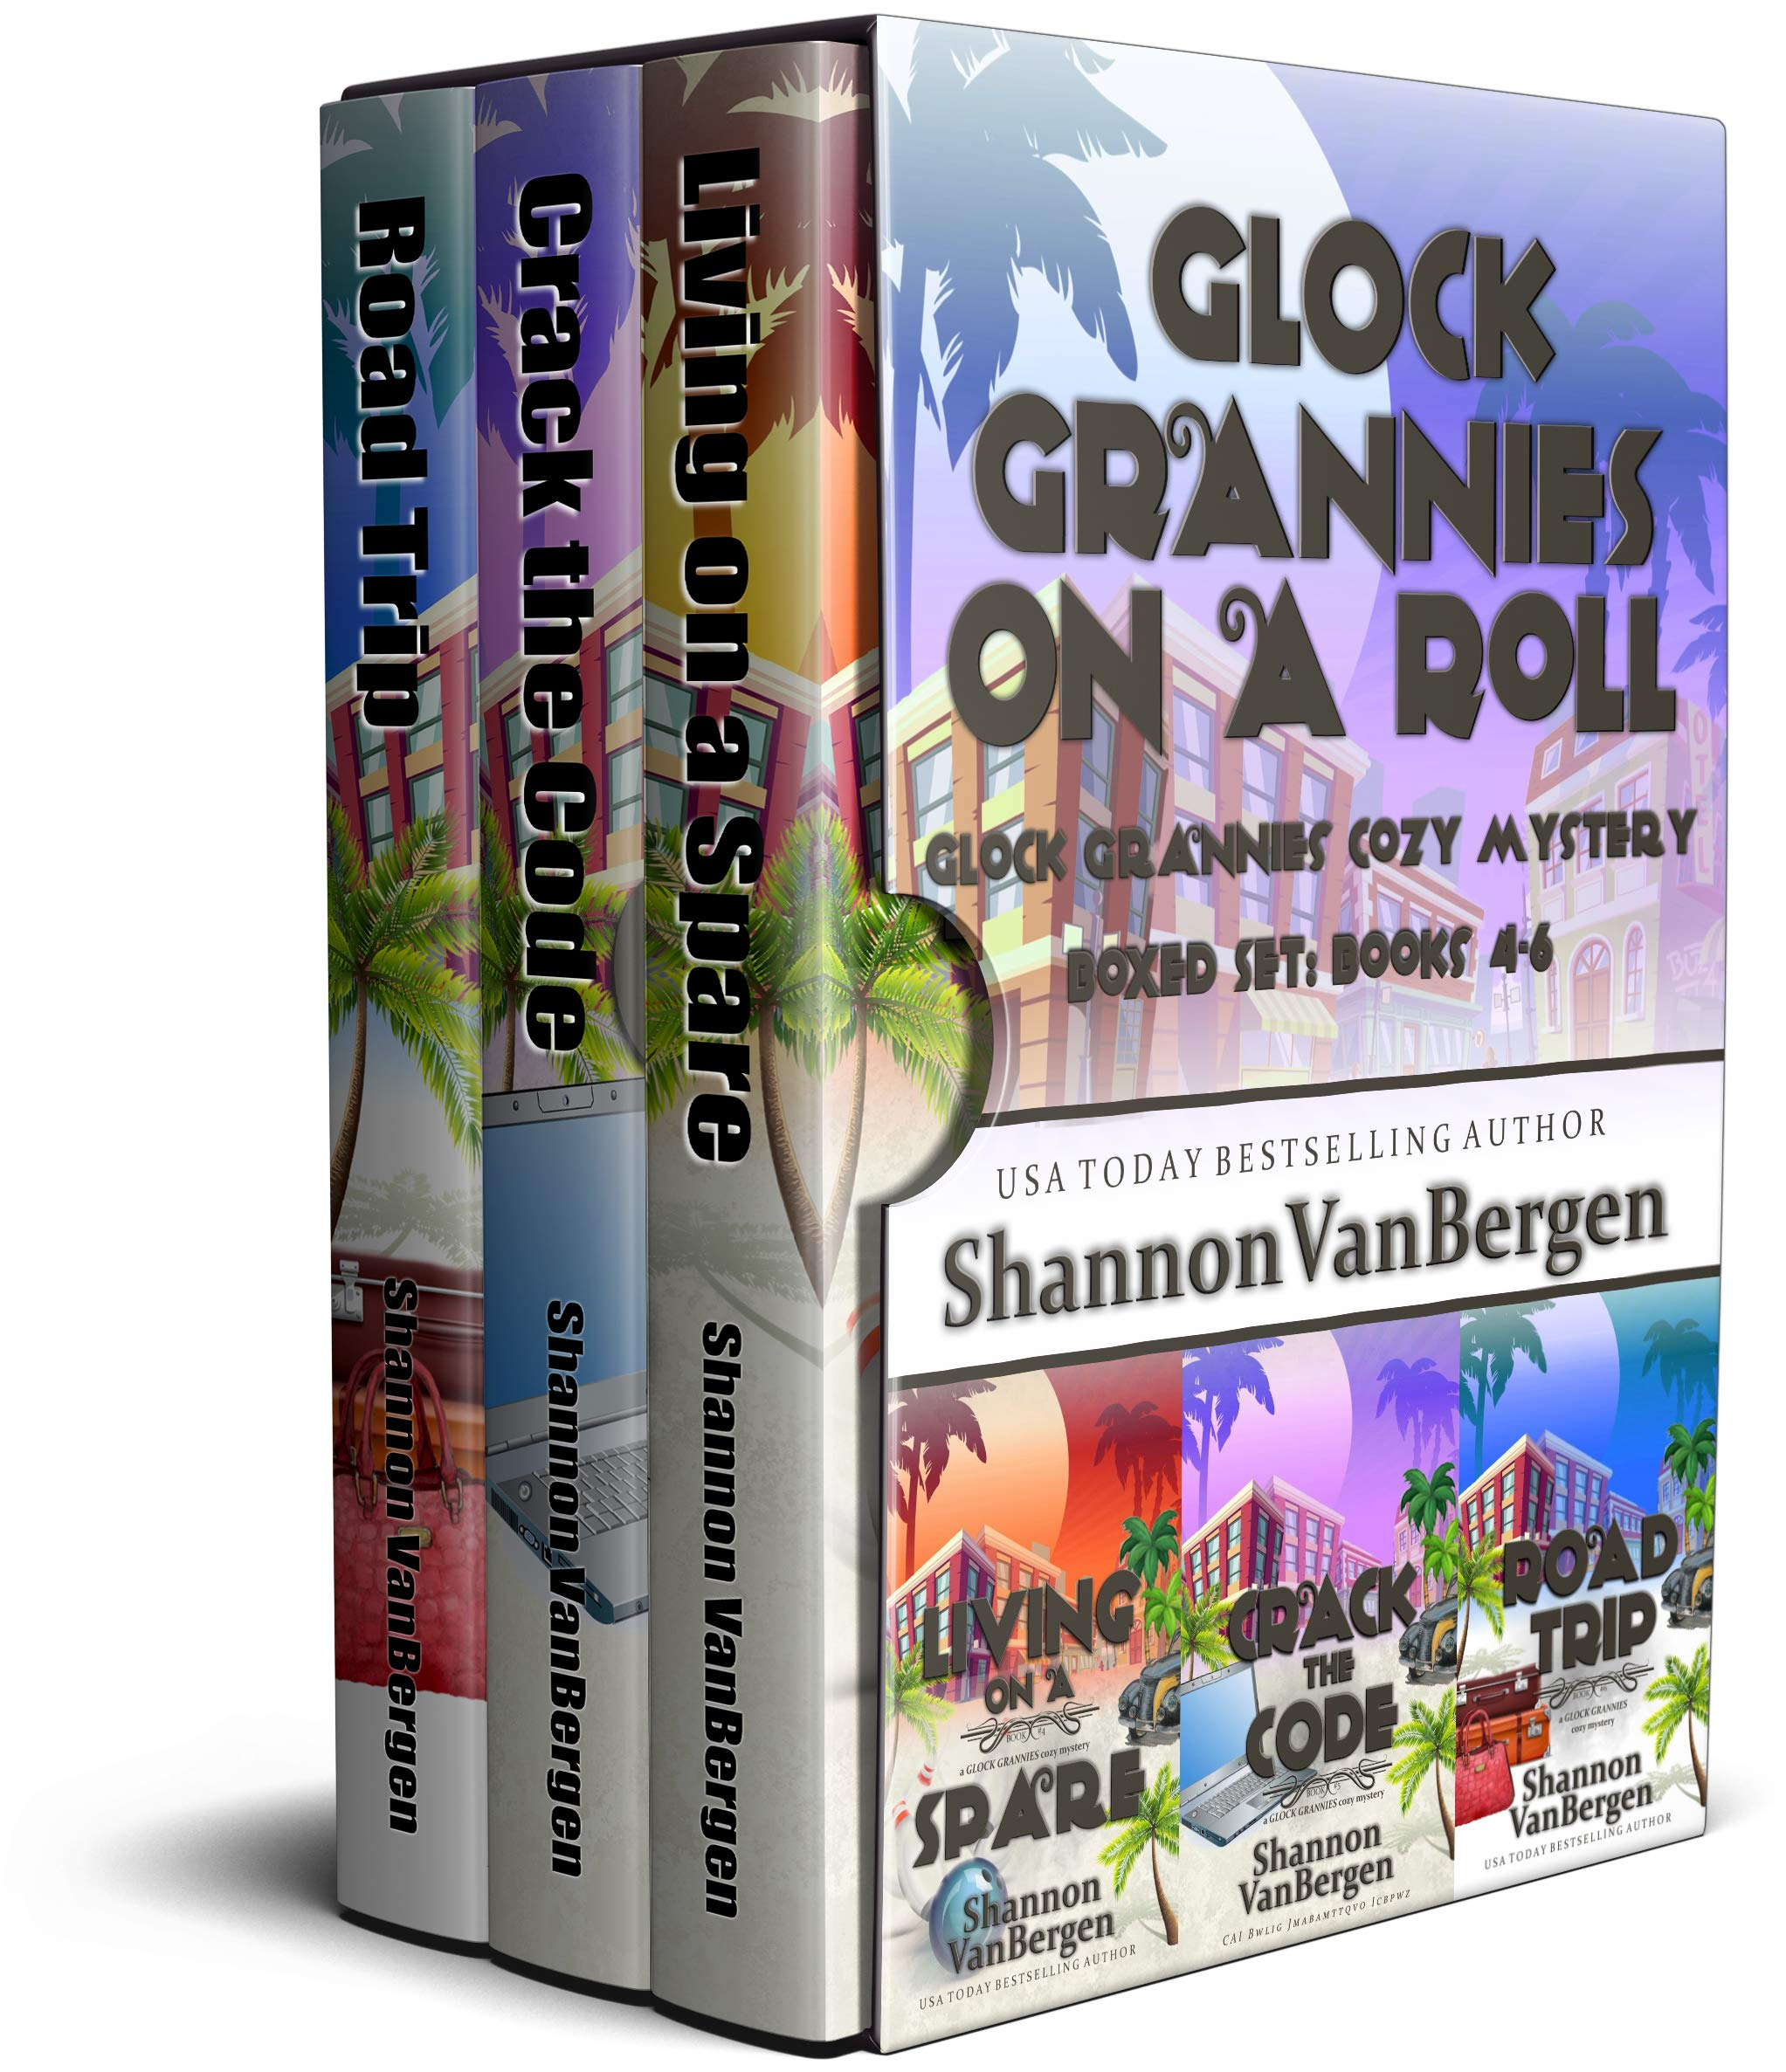 Glock Grannies On a Roll Boxed Set: Glock Grannies Cozy Mystery, Books 4 - 6 (Glock Grannies Cozy Mystery Boxed Sets Book 2)